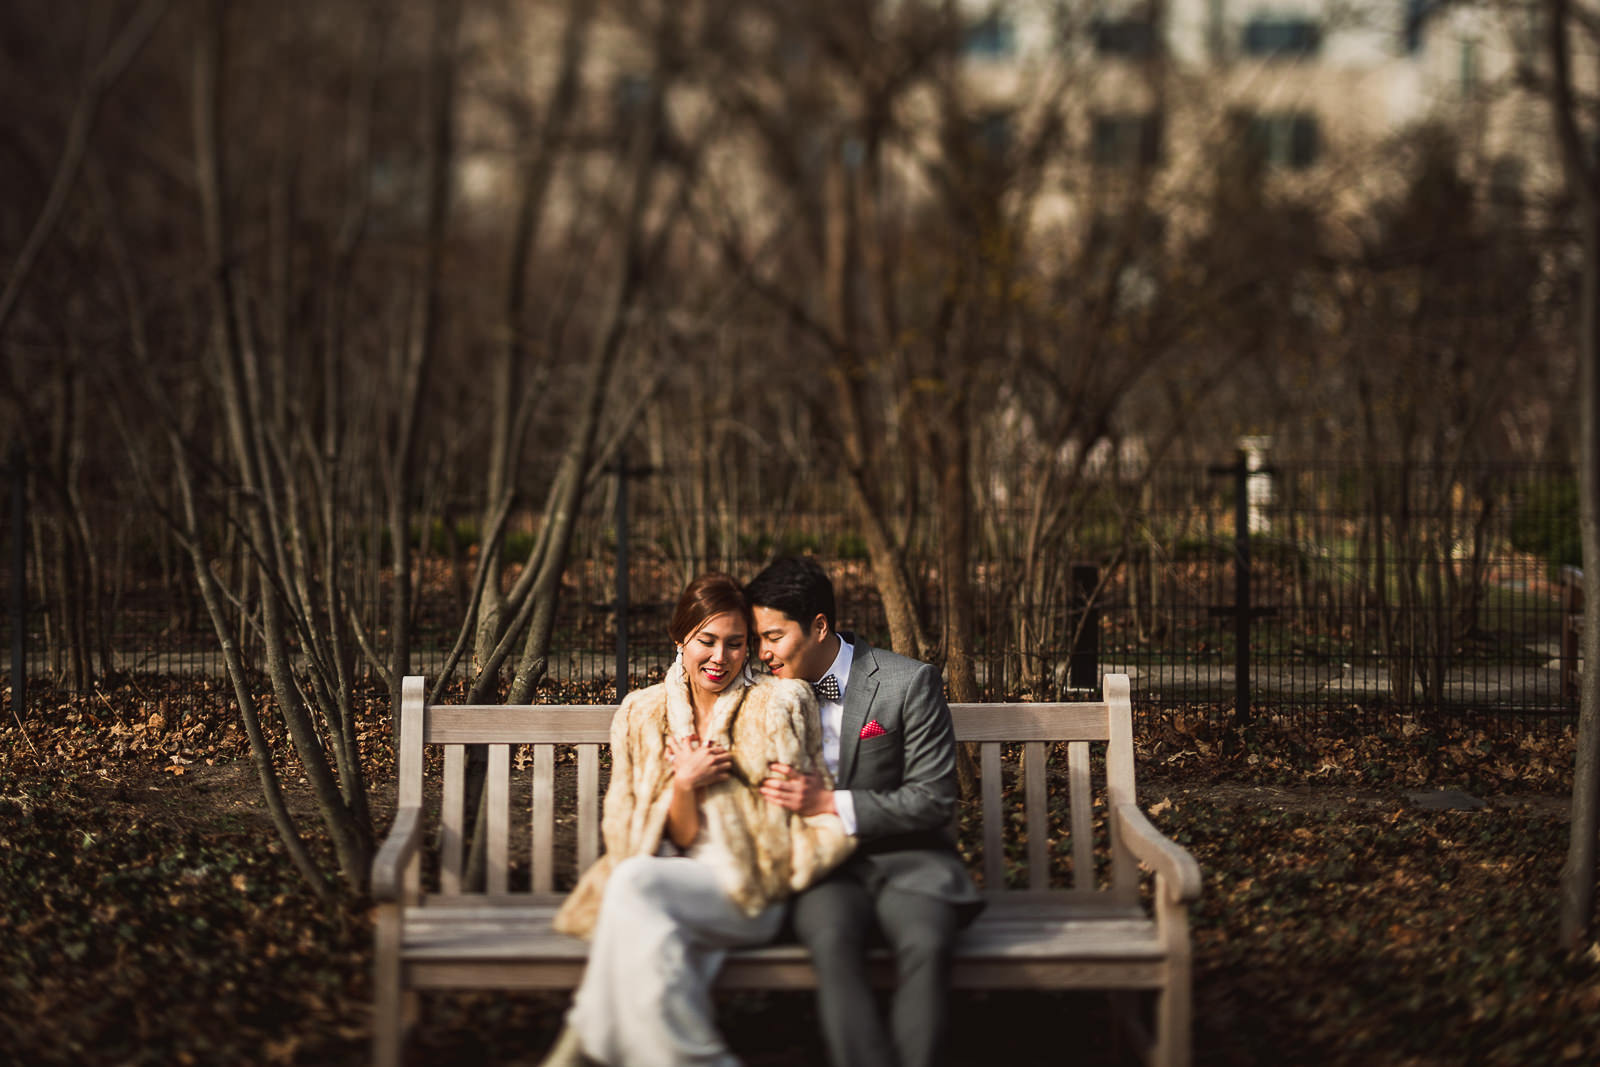 25 best wedding photos in chicago - Rebecca + Doha // Wedding Photos at Room 1520 Chicago